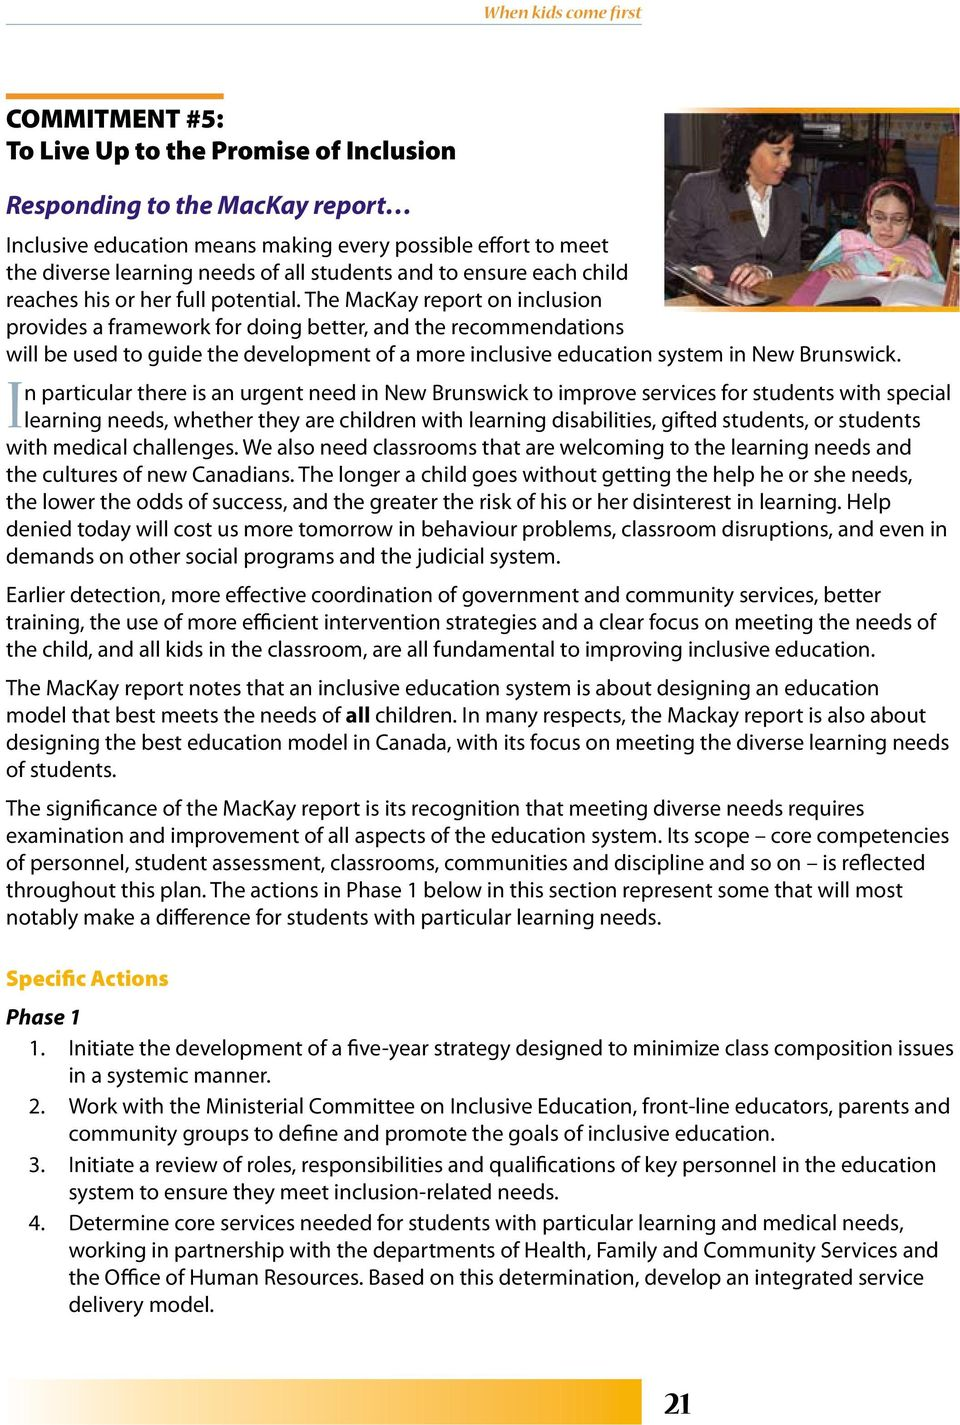 The MacKay report on inclusion provides a framework for doing better, and the recommendations will be used to guide the development of a more inclusive education system in New Brunswick.